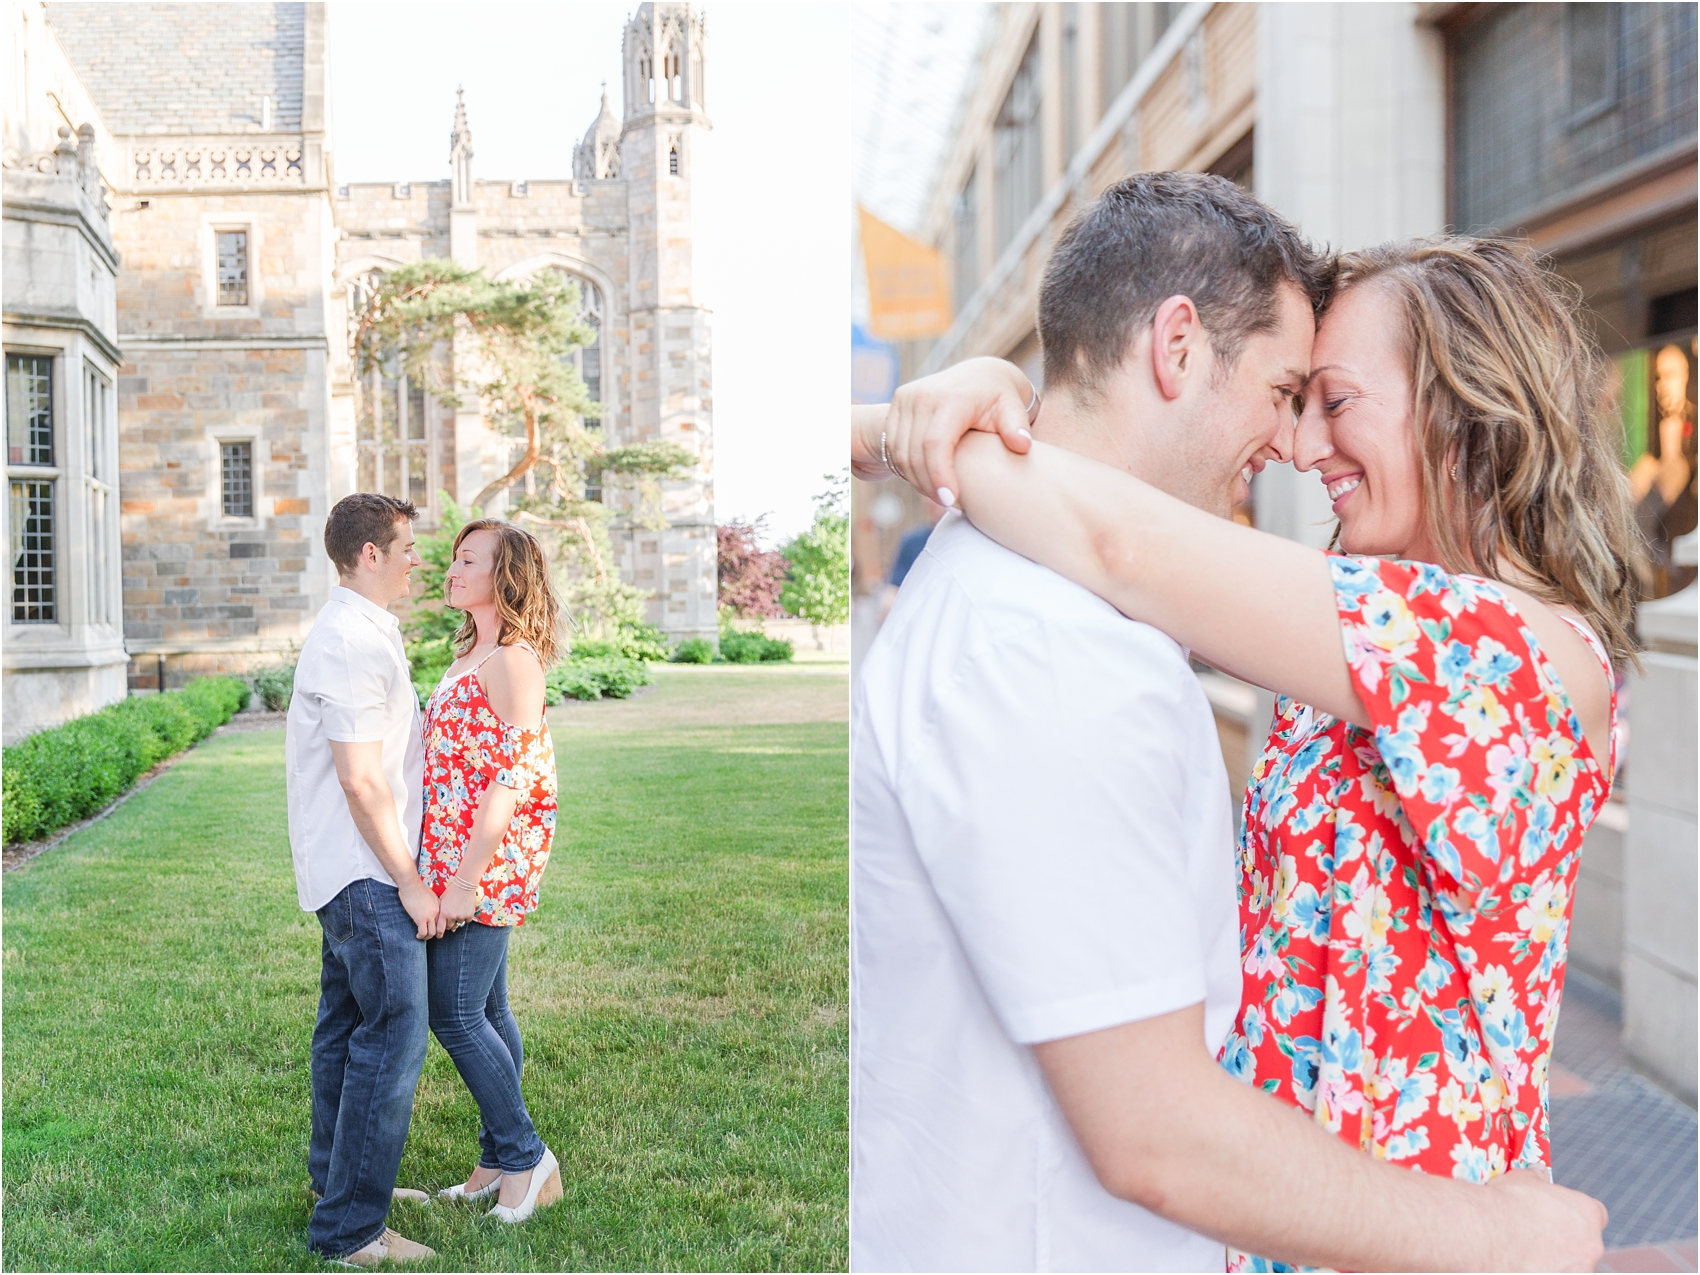 fun-adventurous-engagement-photos-at-the-nickels-arcade-in-ann-arbor-mi-by-courtney-carolyn-photography_0033.jpg